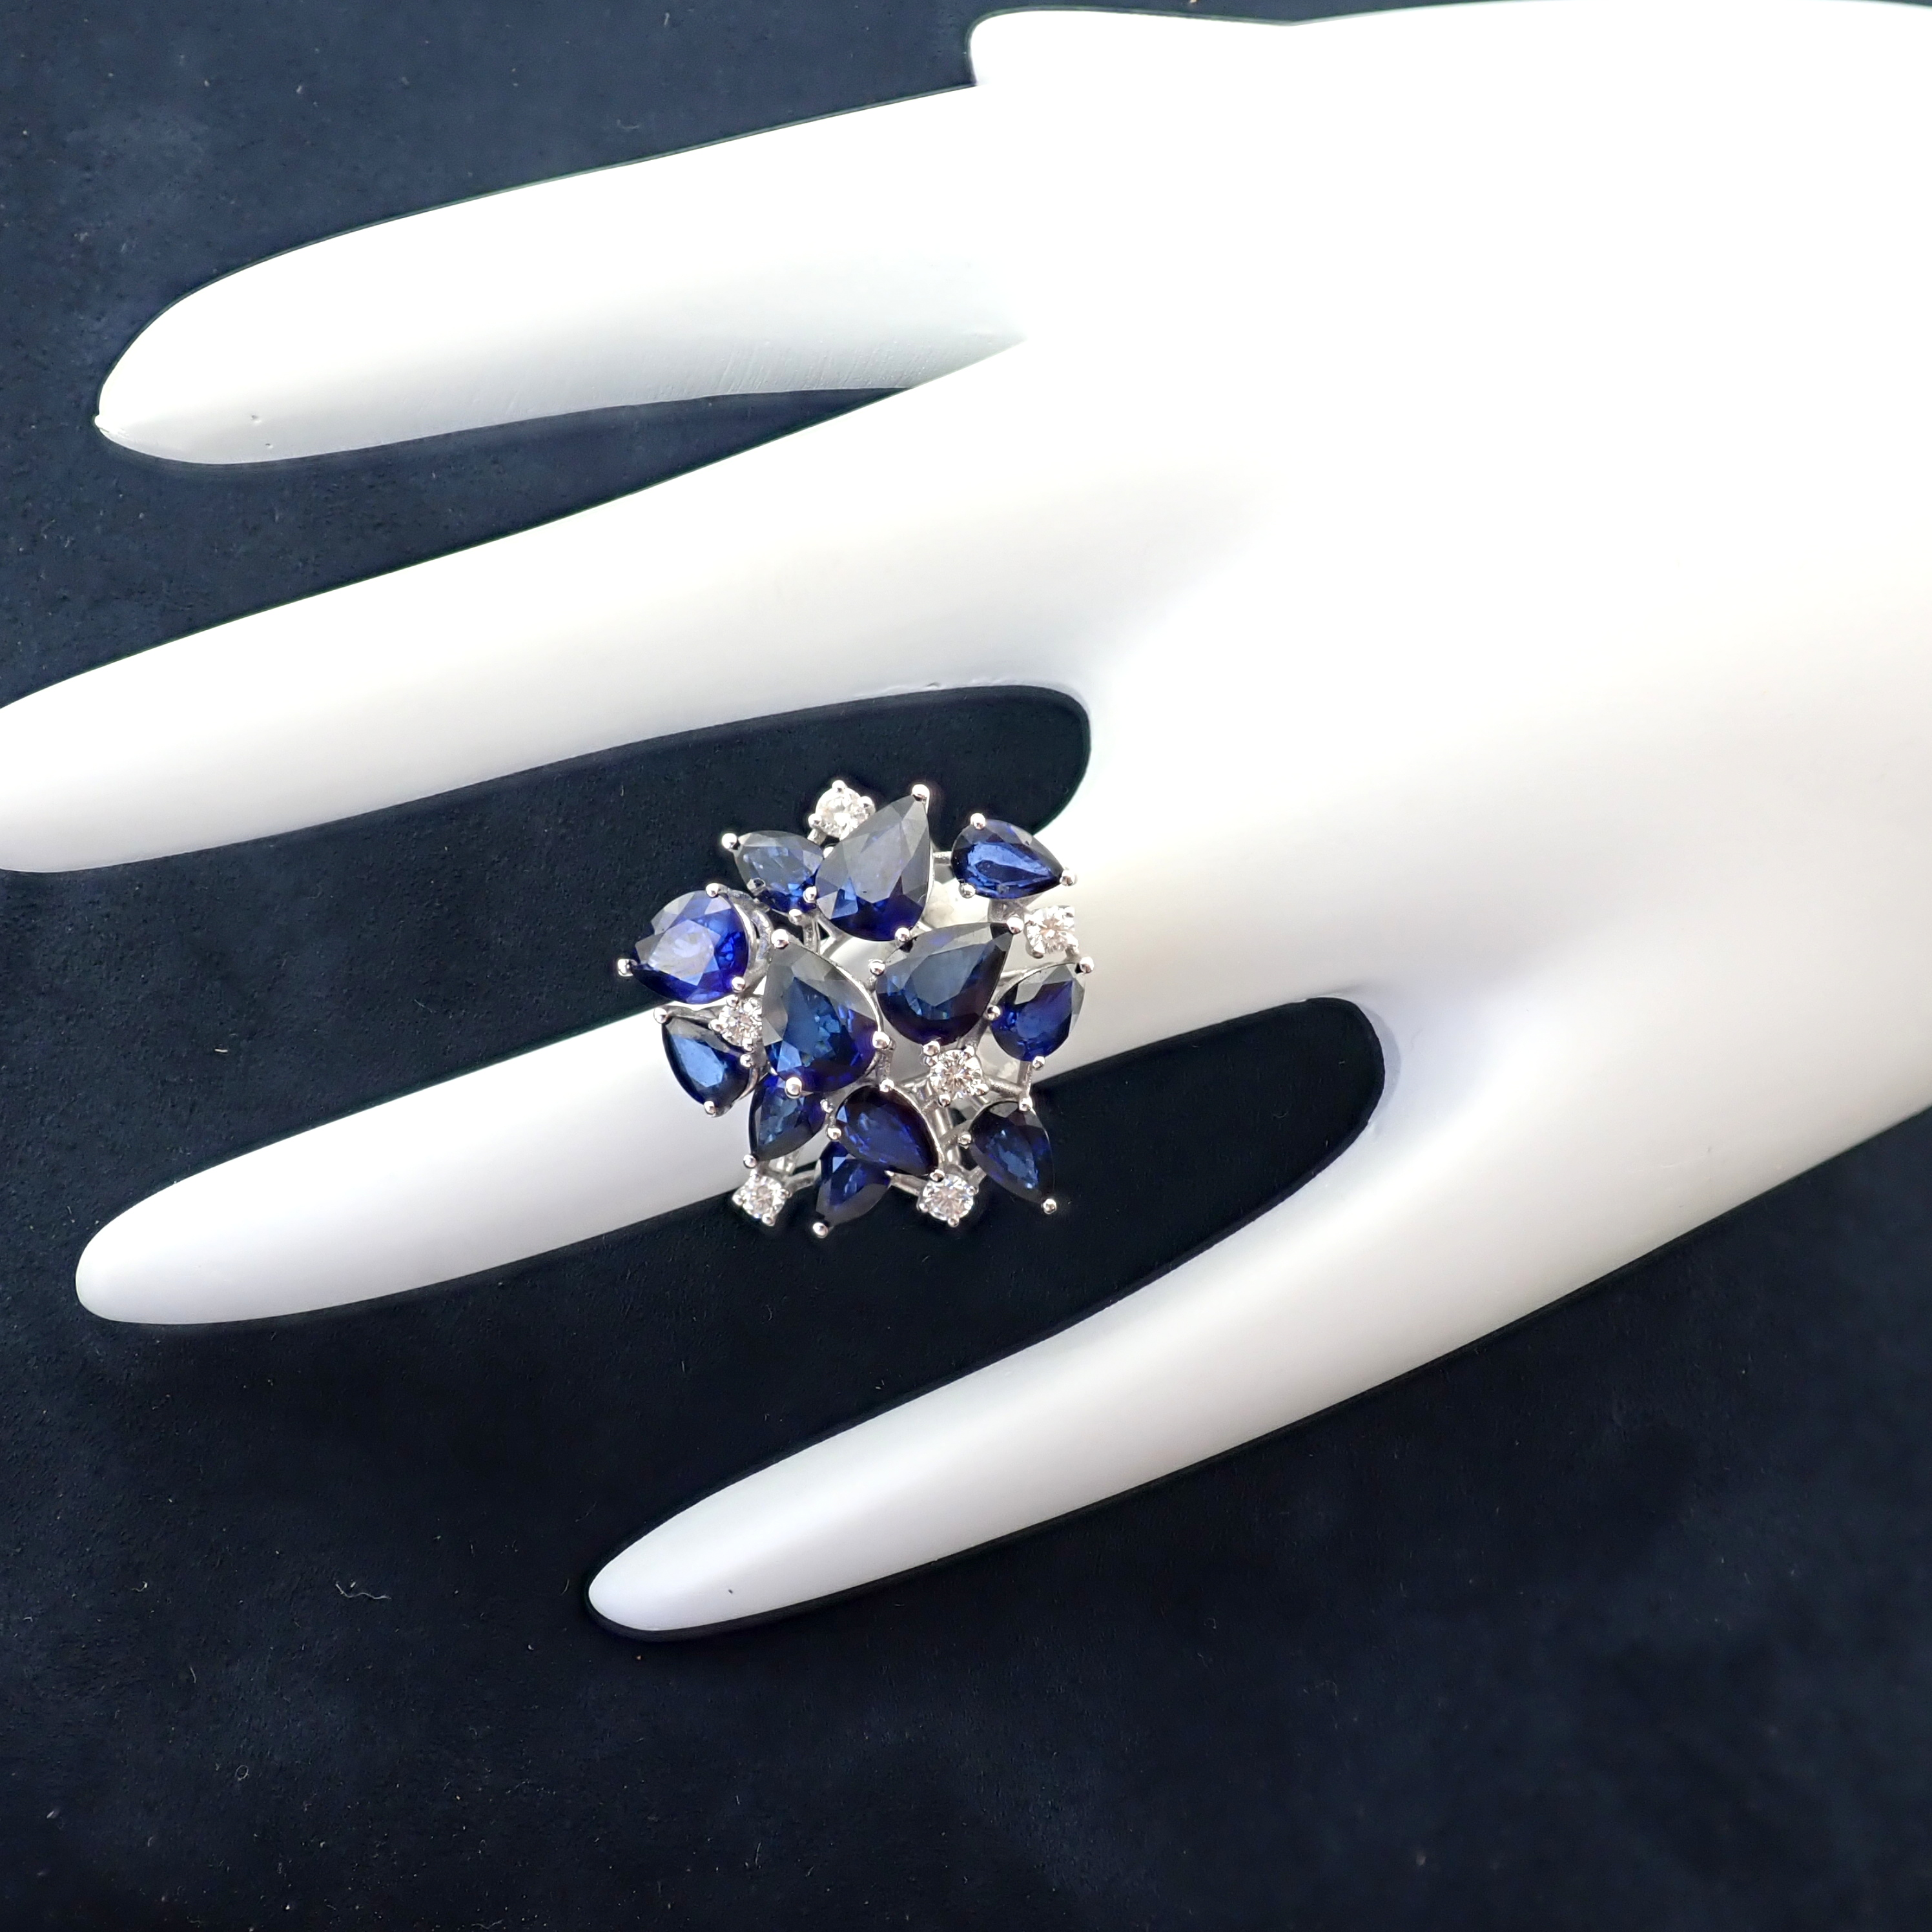 14K Sapphire and Diamond Ring - Image 4 of 7